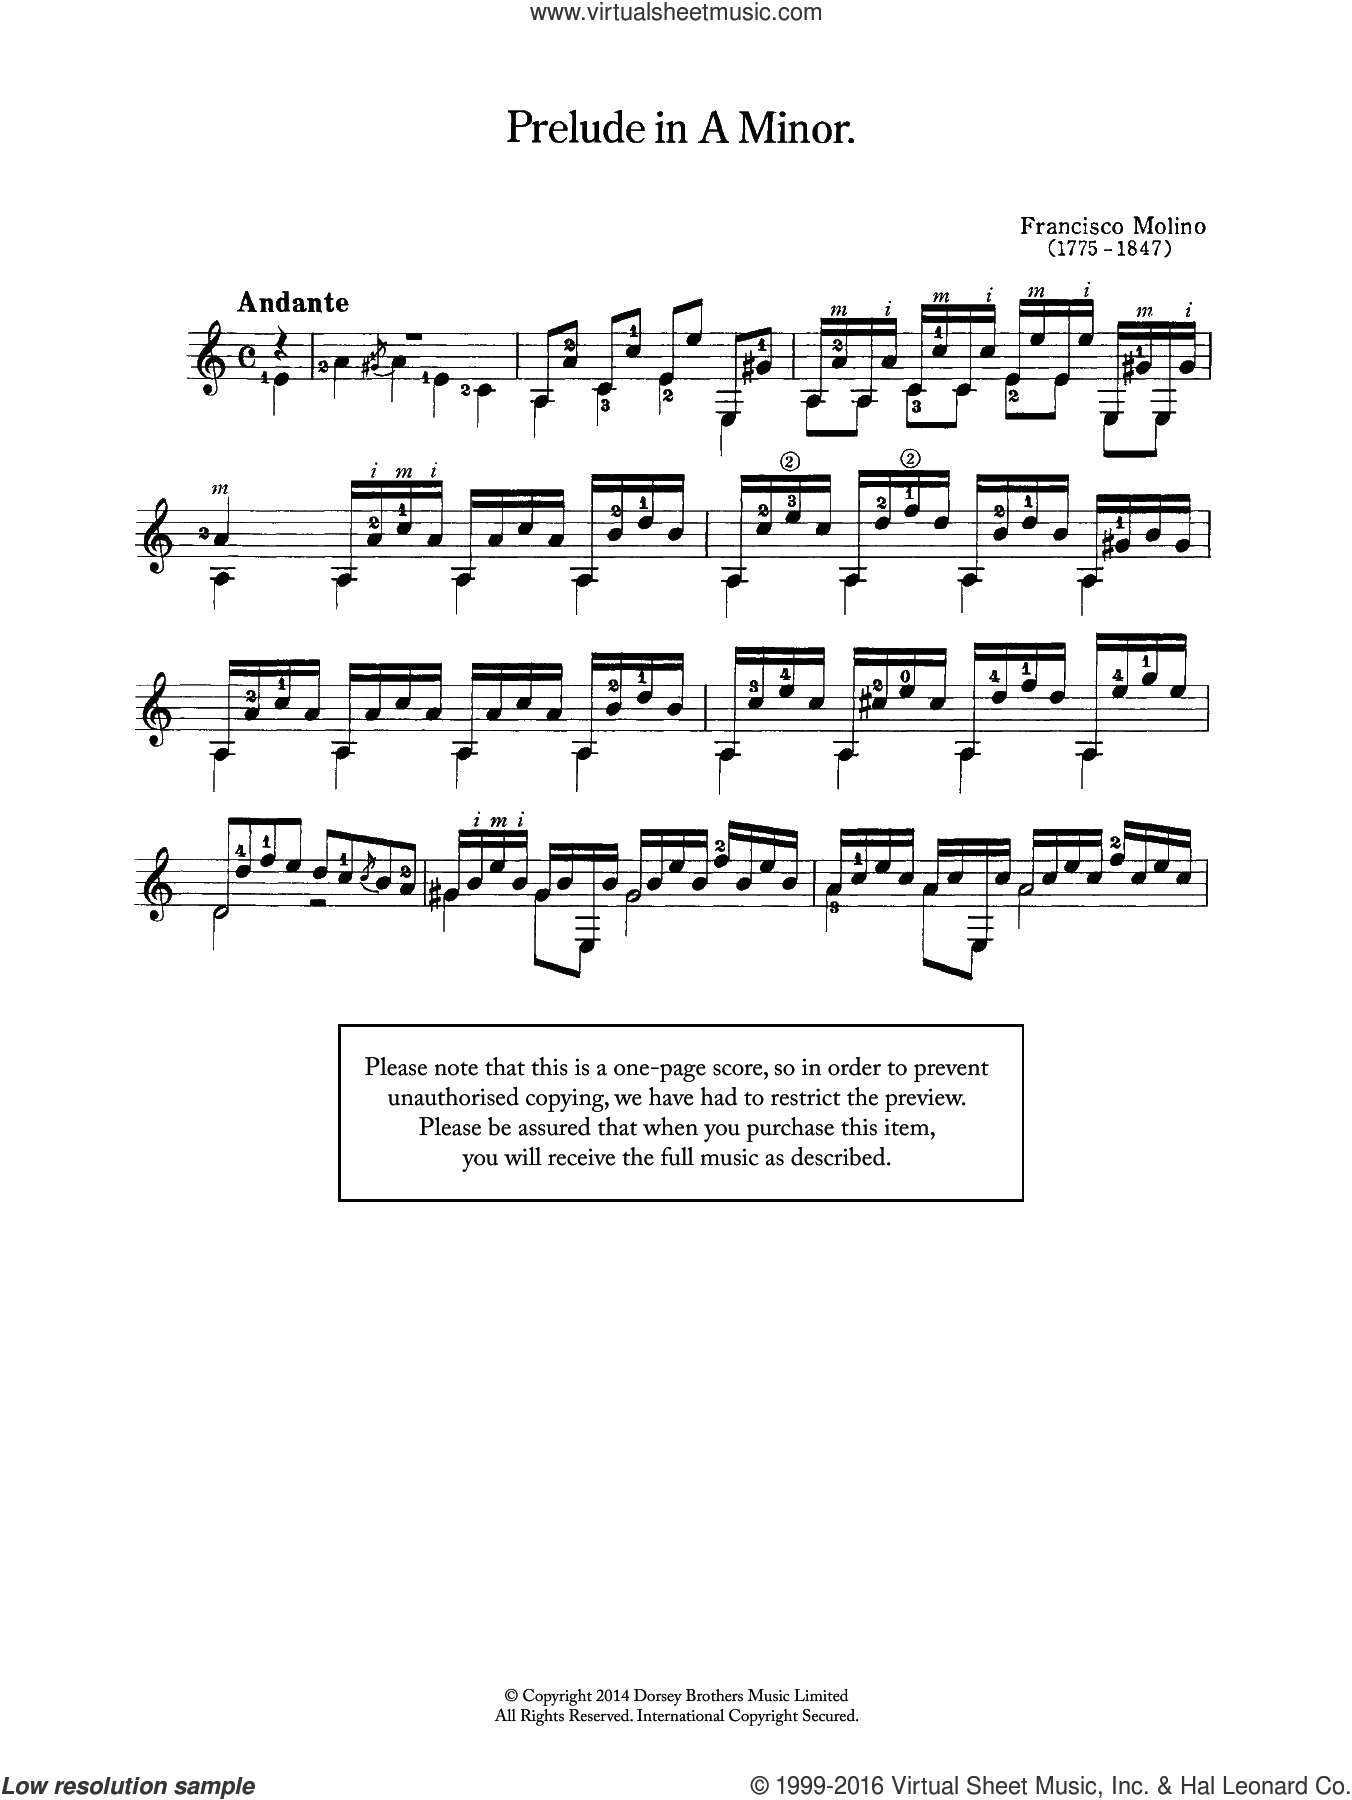 Prelude In A Minor sheet music for guitar solo (chords) by Francesco Molino, classical score, easy guitar (chords). Score Image Preview.